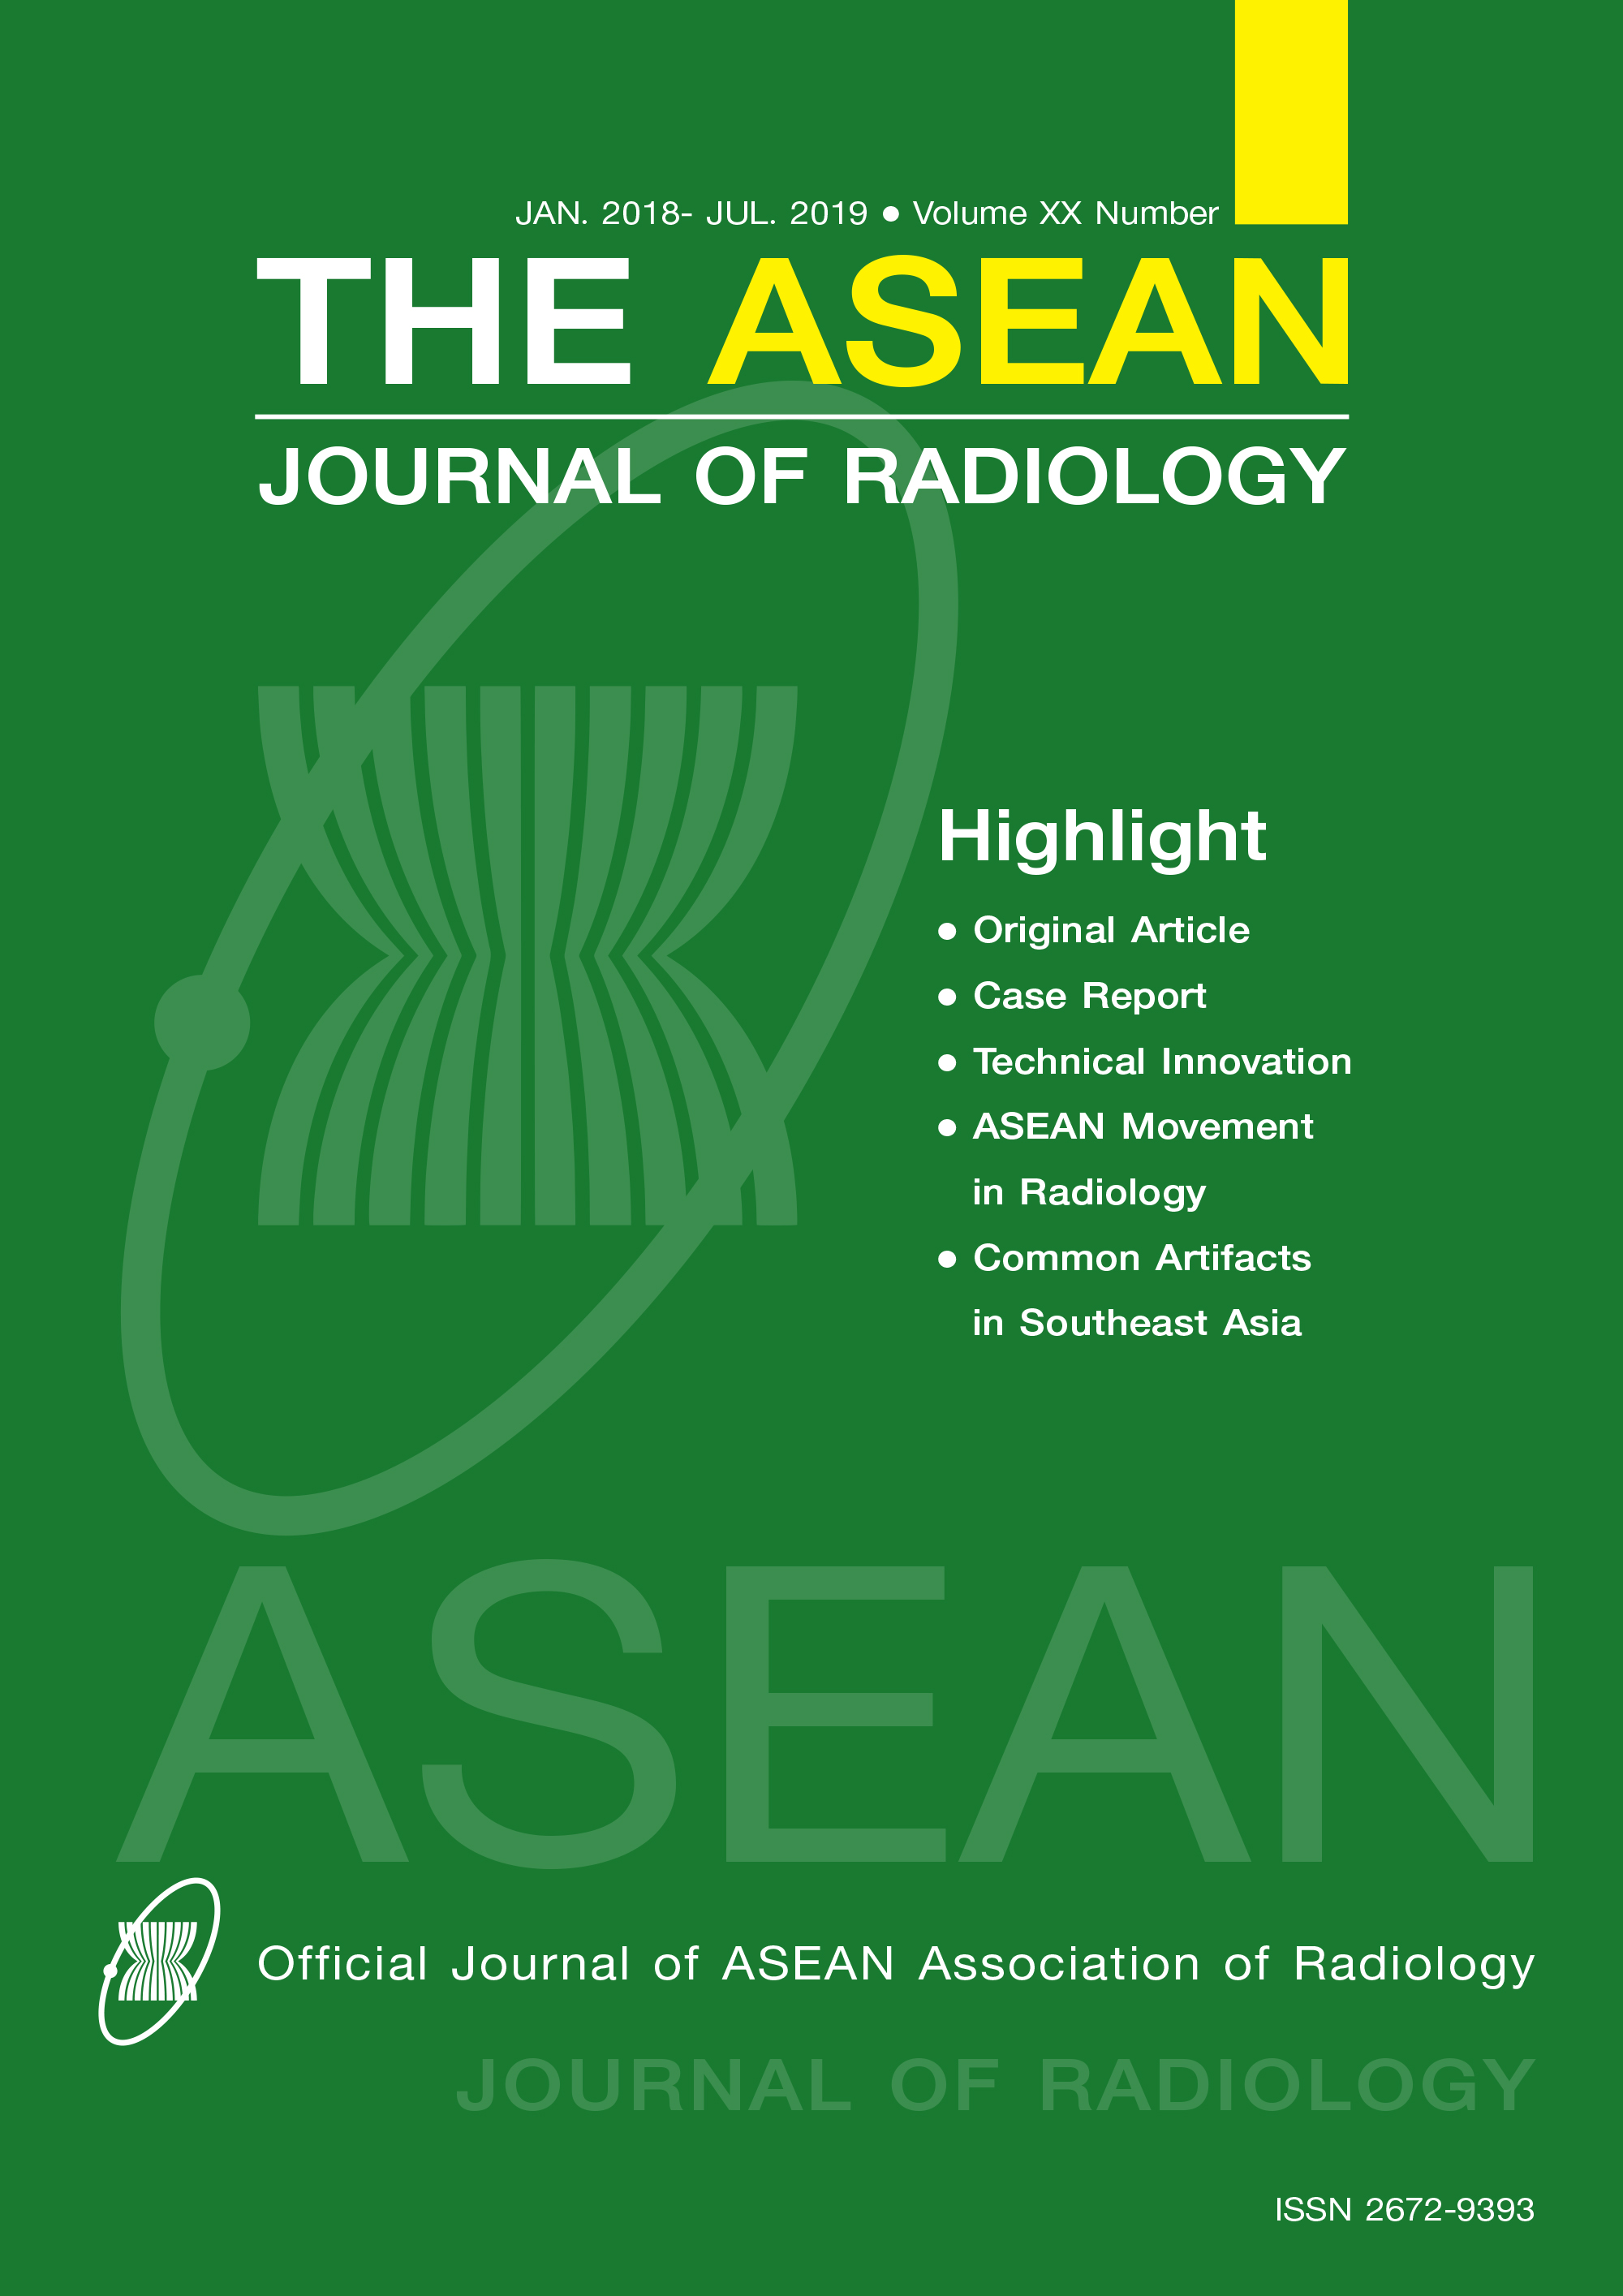 View Vol. 20 No. 1 (2019): The first fully online issue of The ASEAN Journal of Radiology